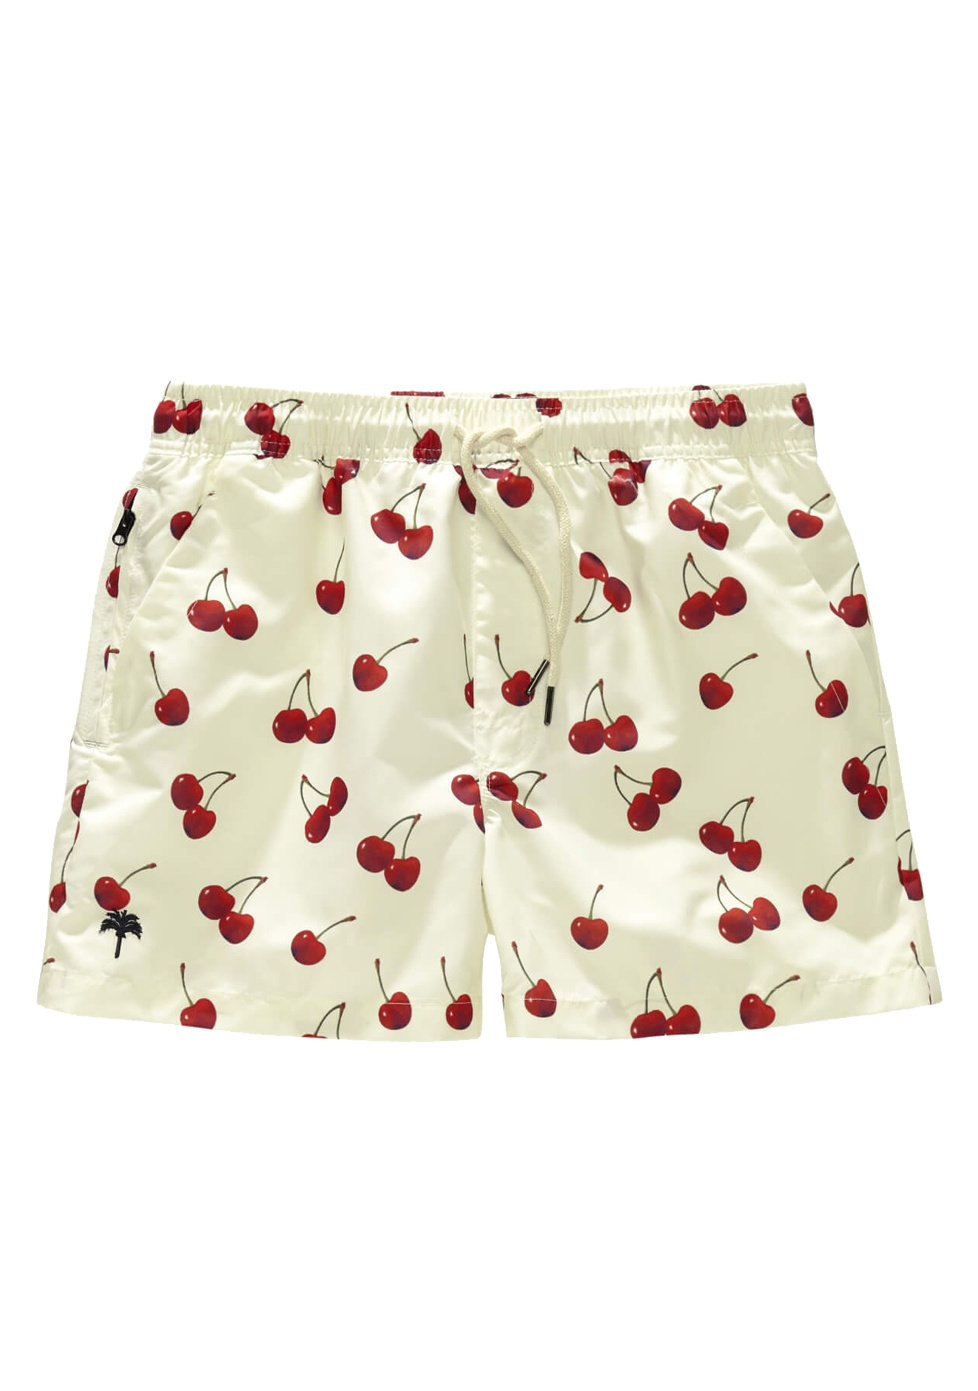 Zwembroek Kort Model.Oas Swim Short Cherry Cream Les Deux Freres